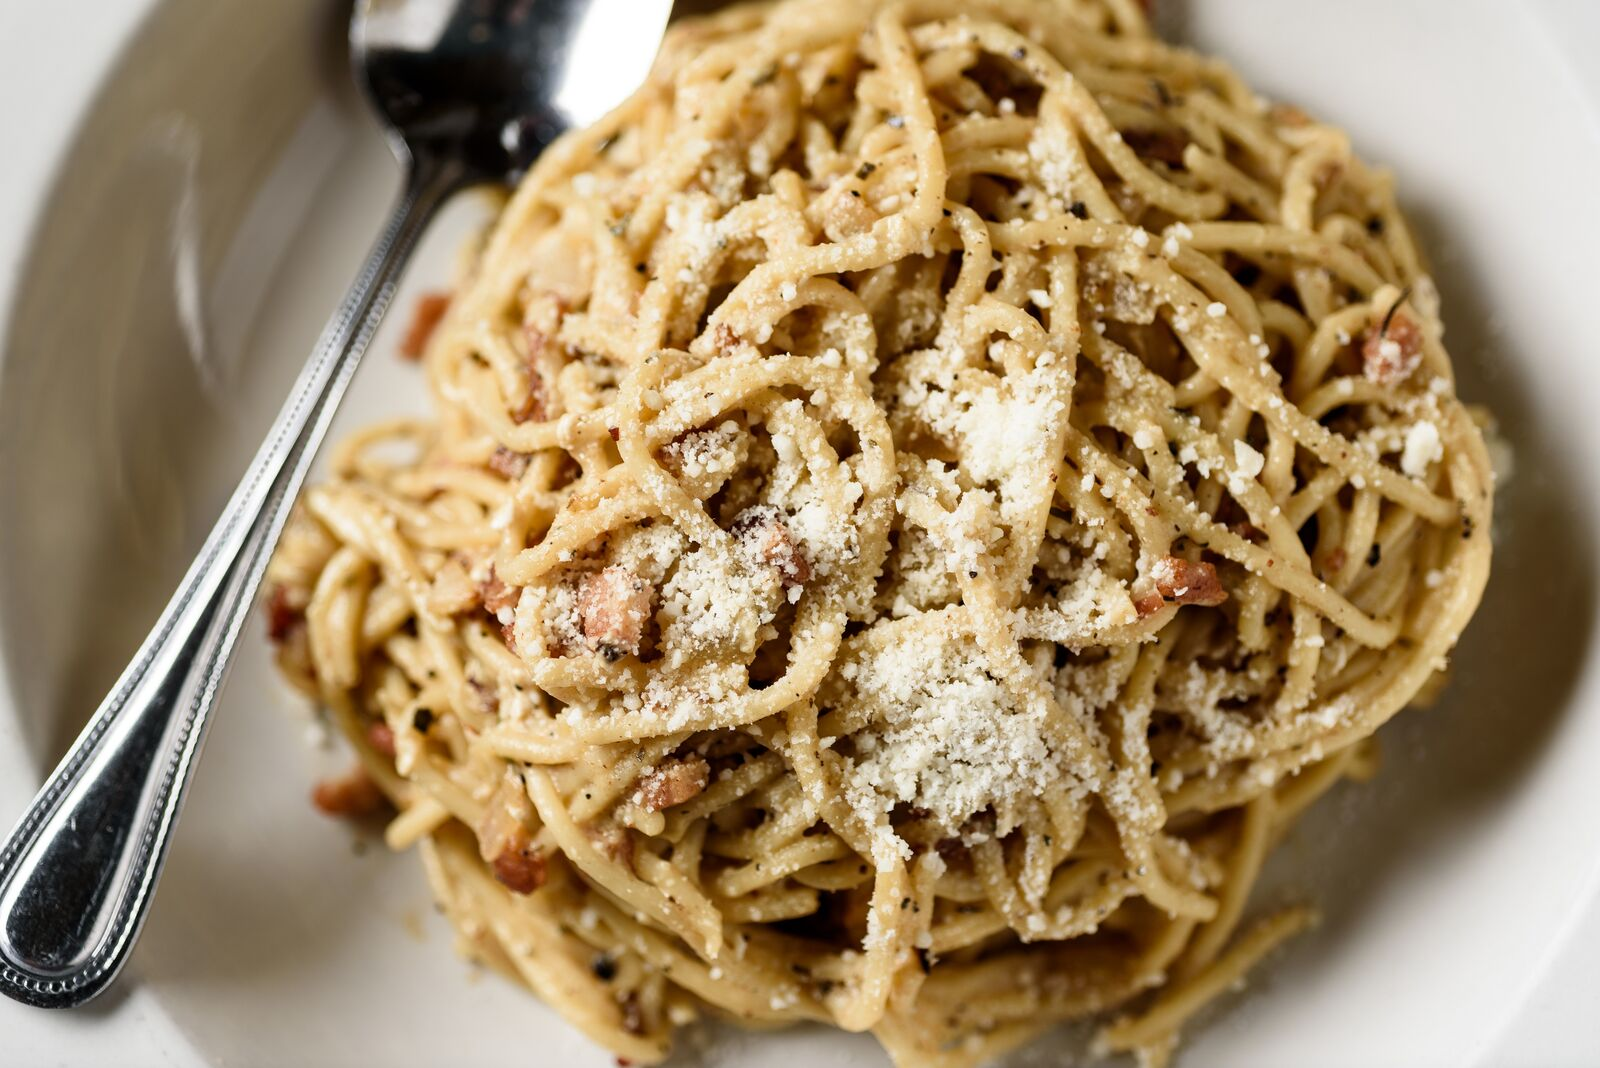 https://0201.nccdn.net/1_2/000/000/0f2/0e6/carbonara.jpeg